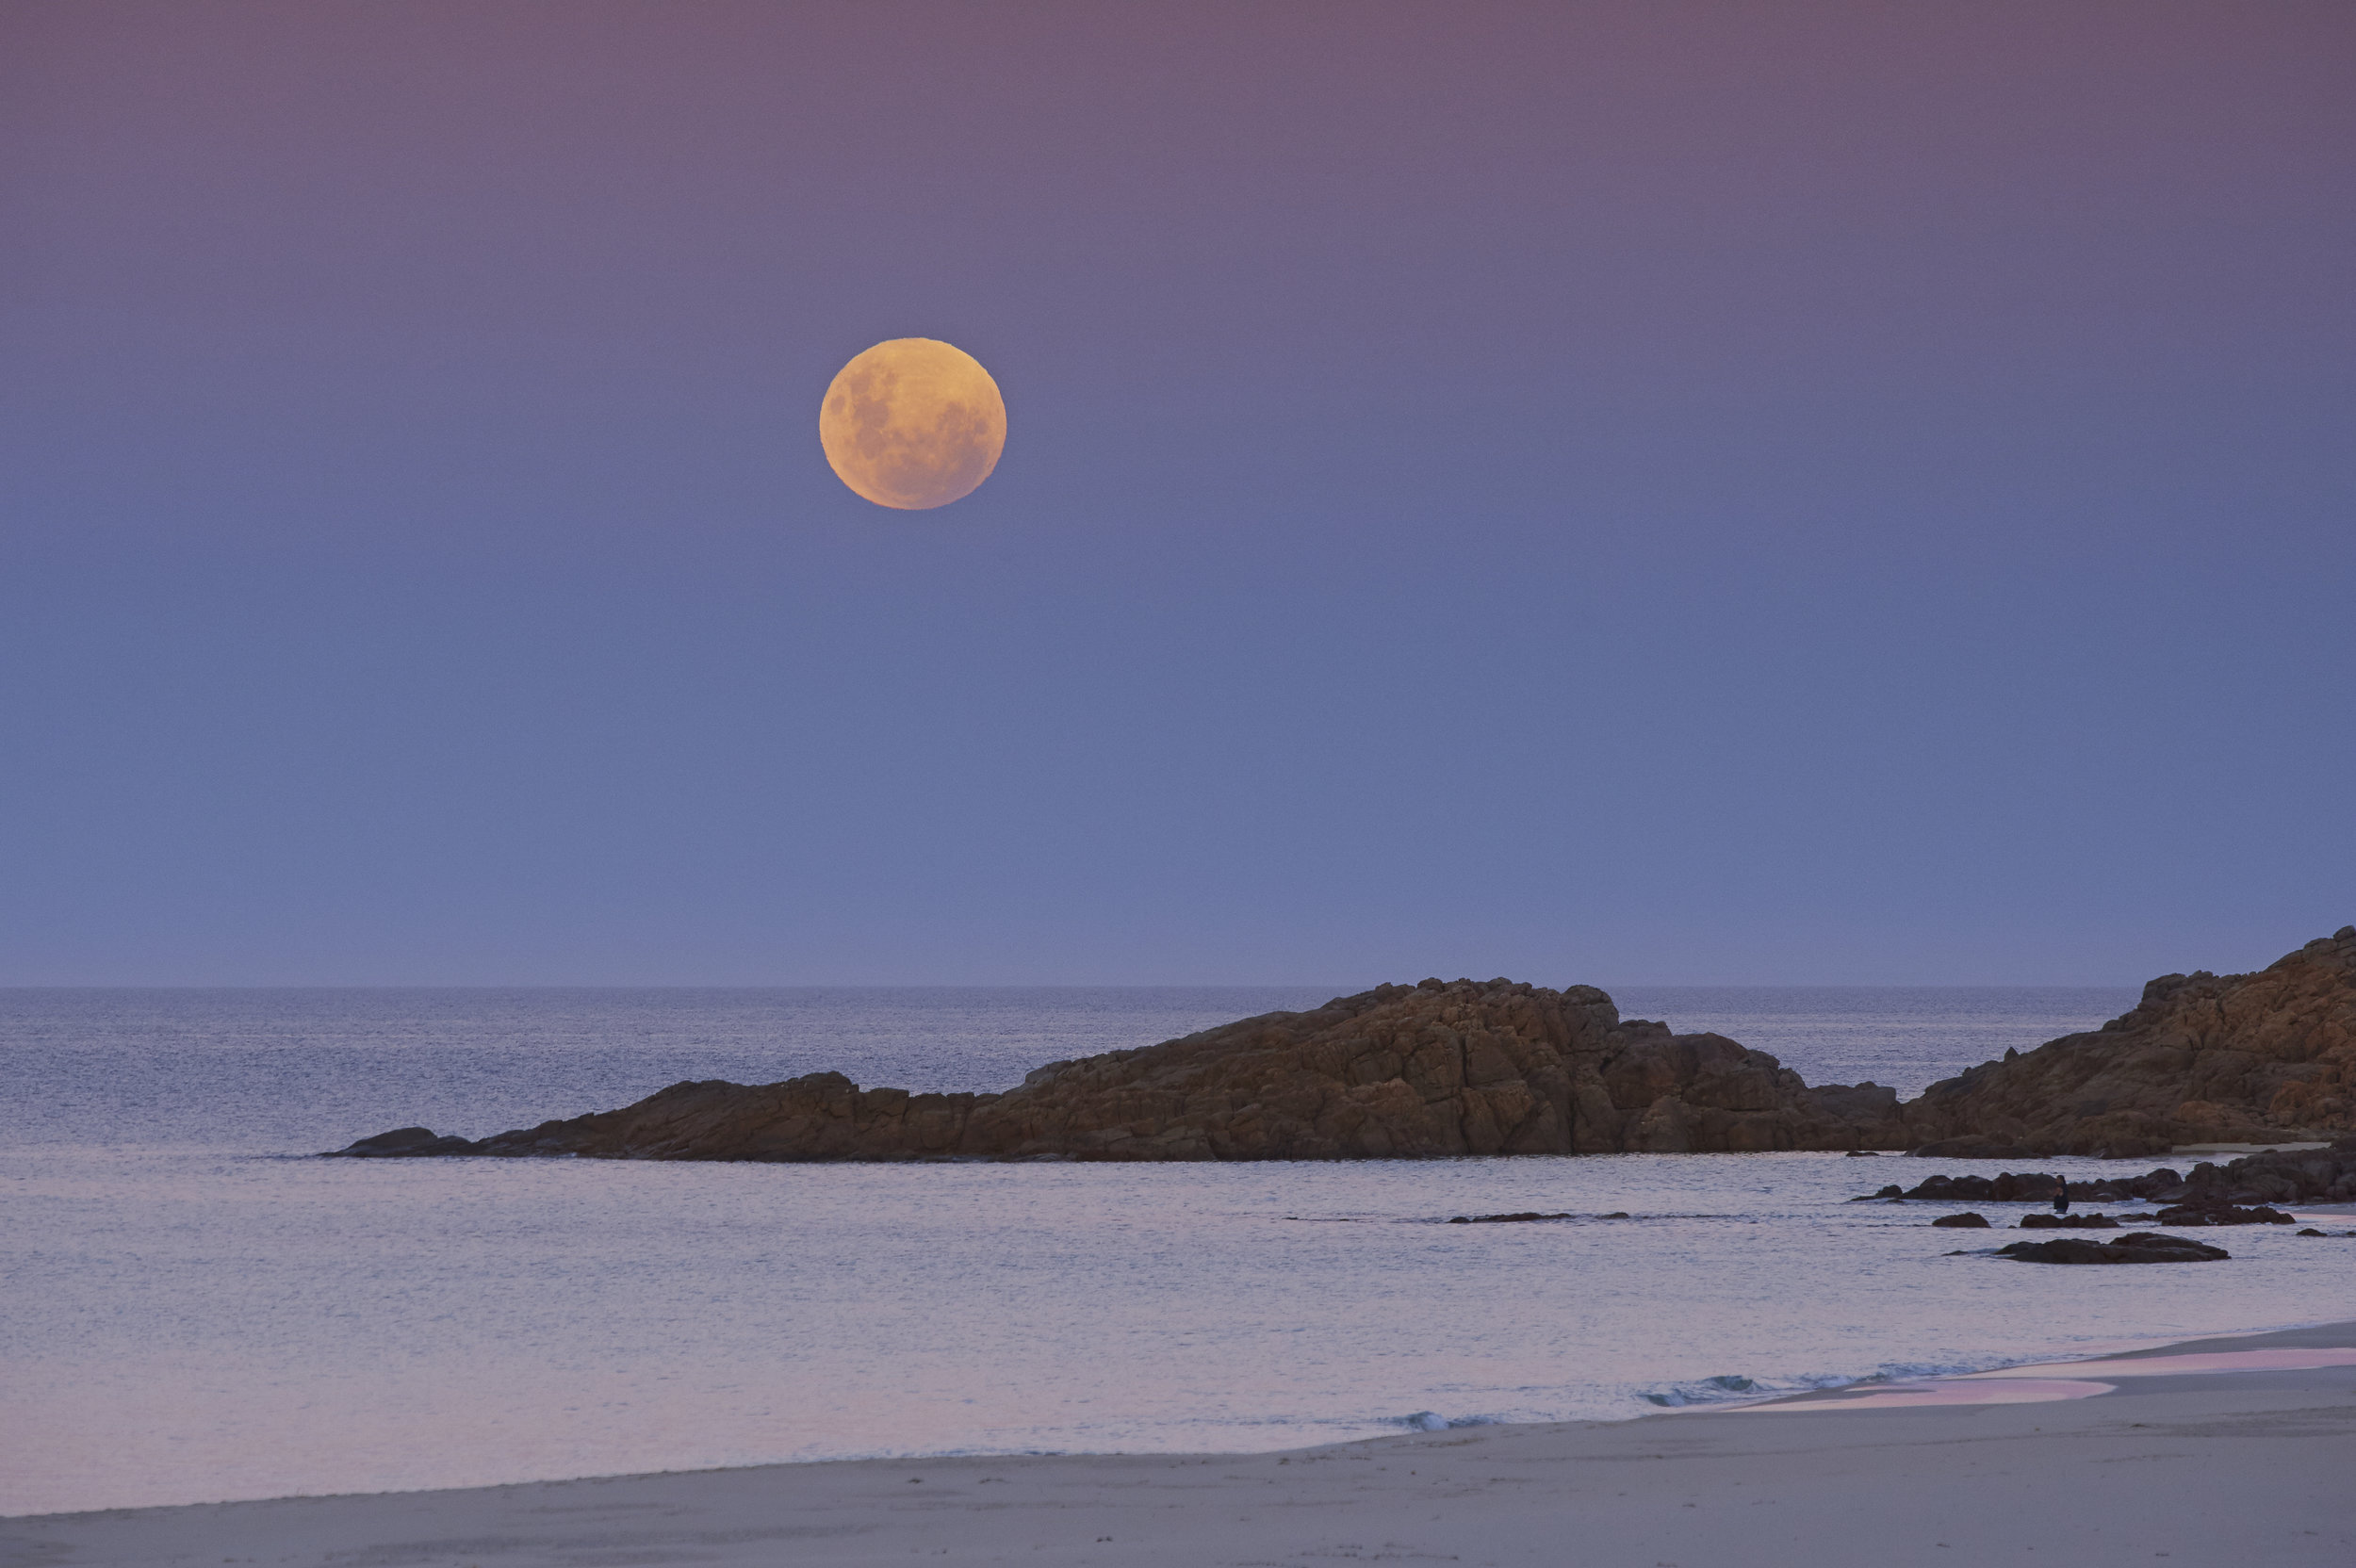 004_20180131_STOCK_Full Moon Rising over bunker Bay.jpg